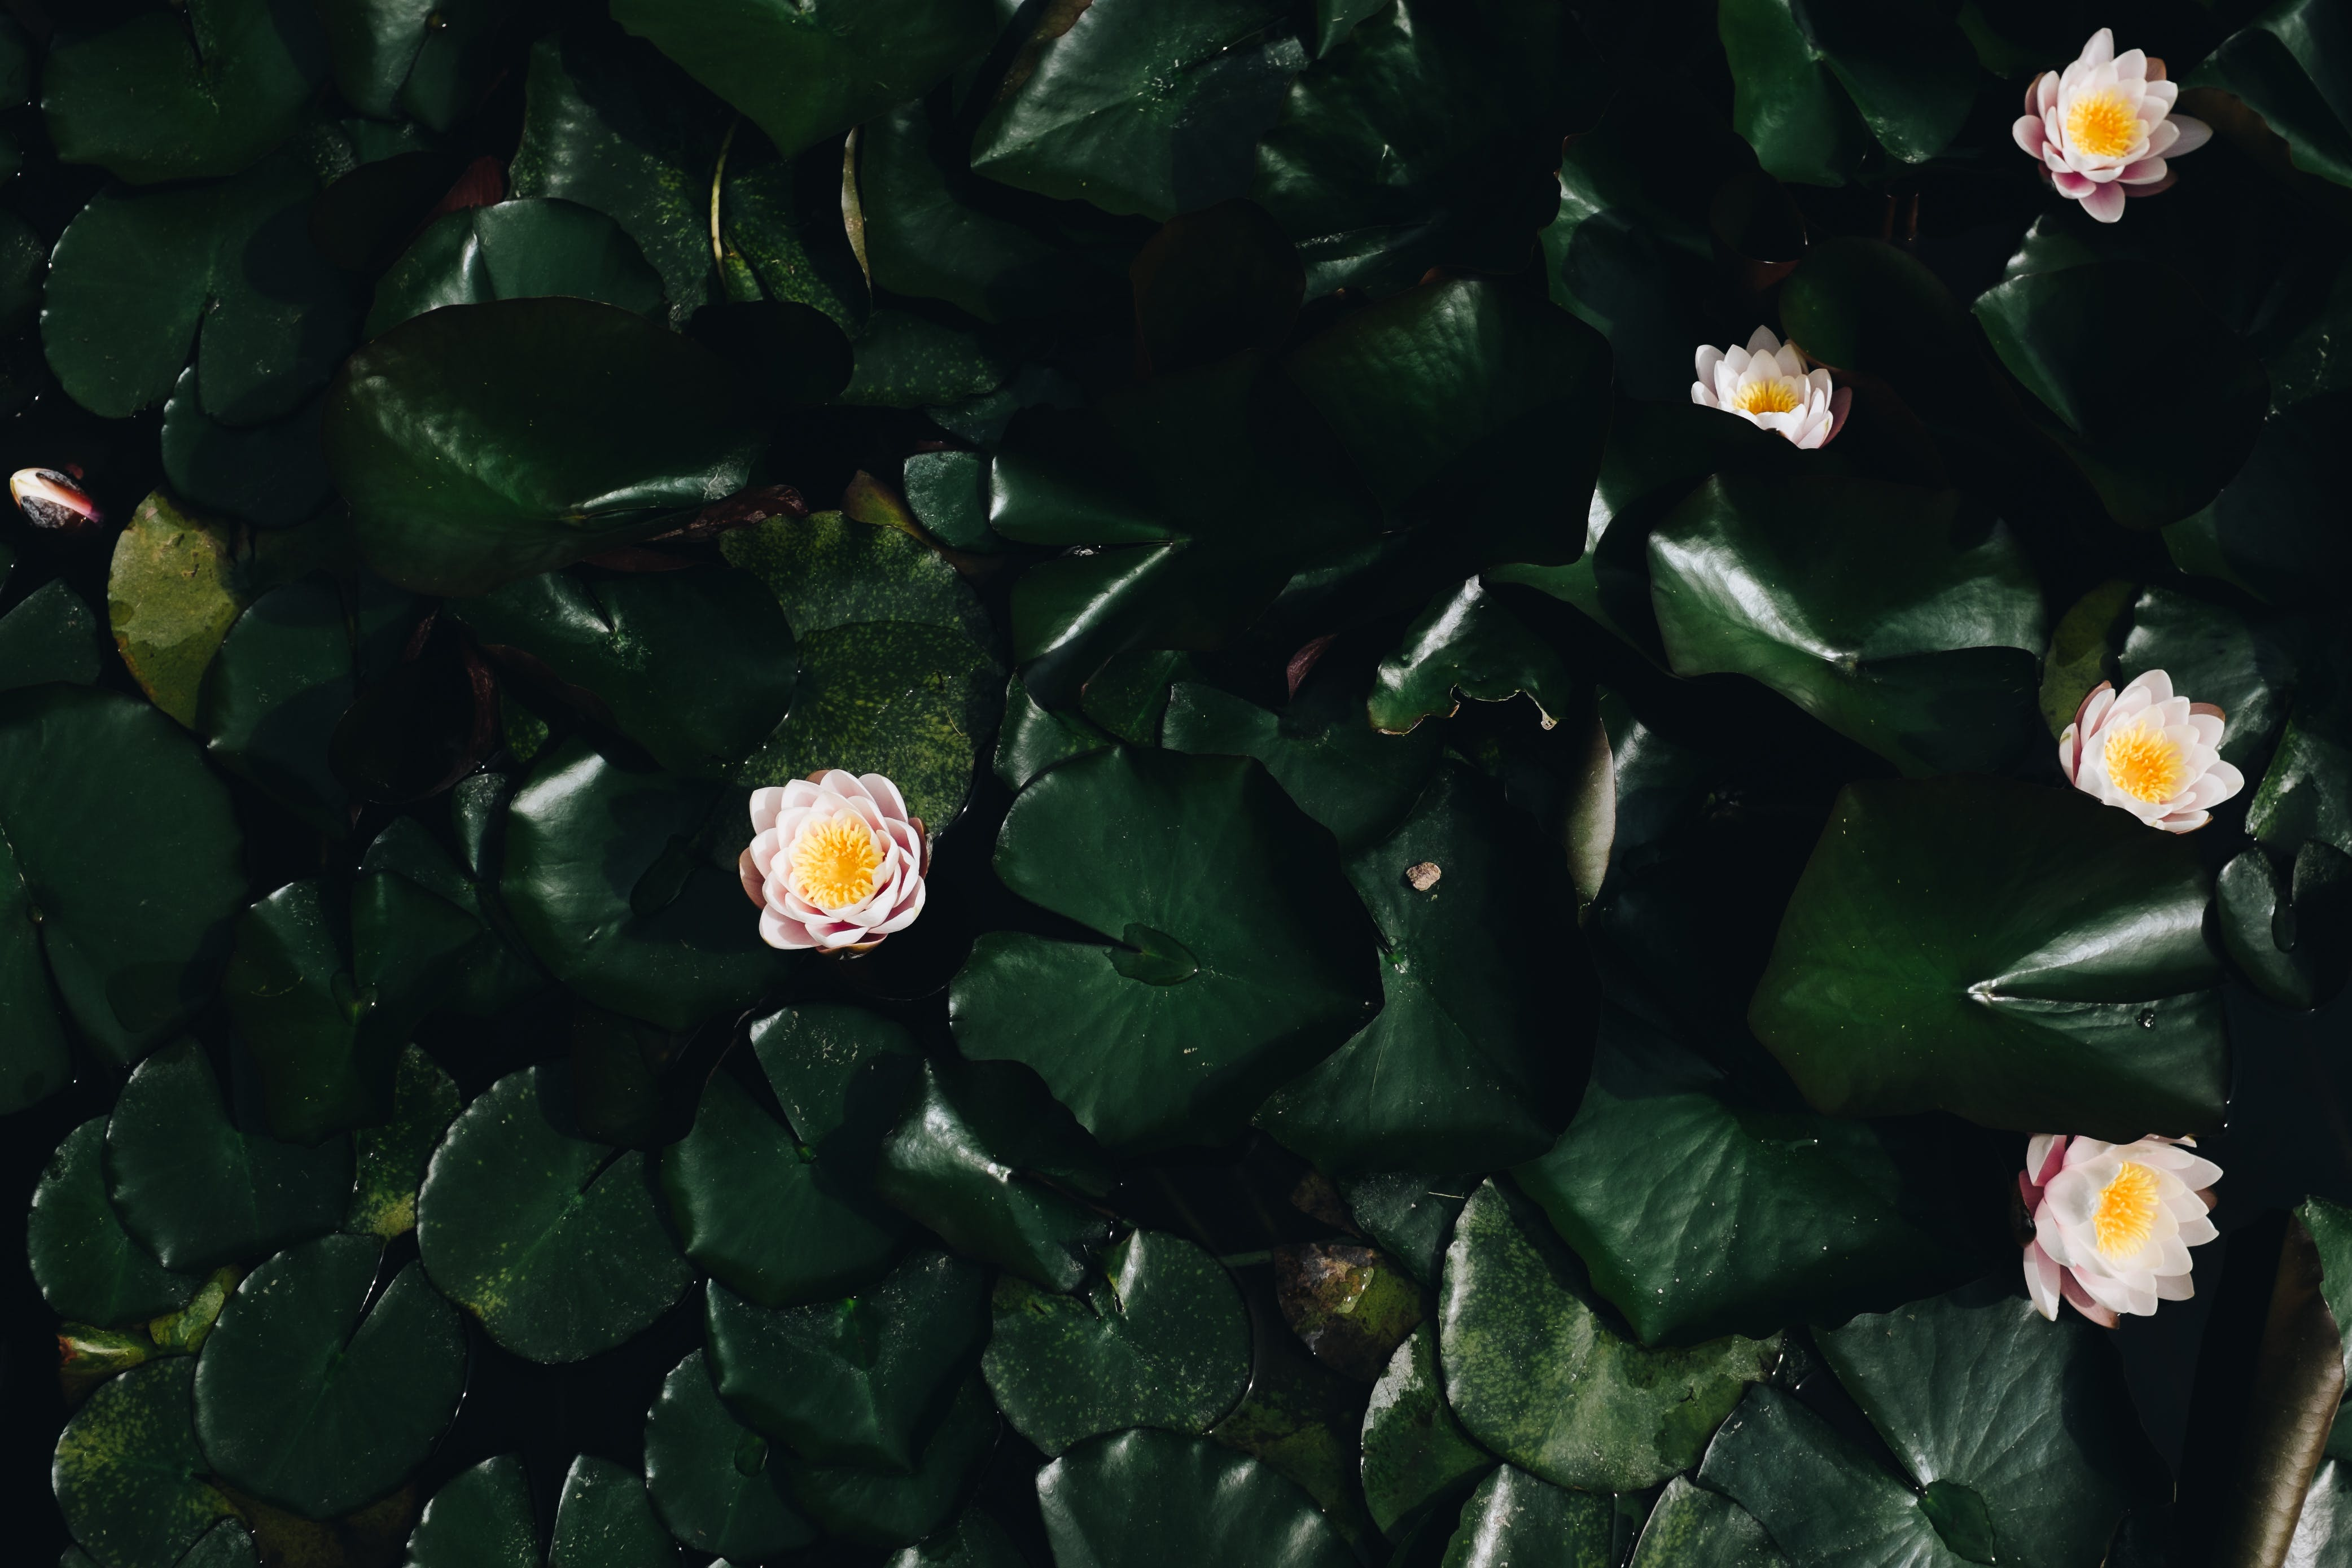 Free stock photo of flowers, petals, plant, pond